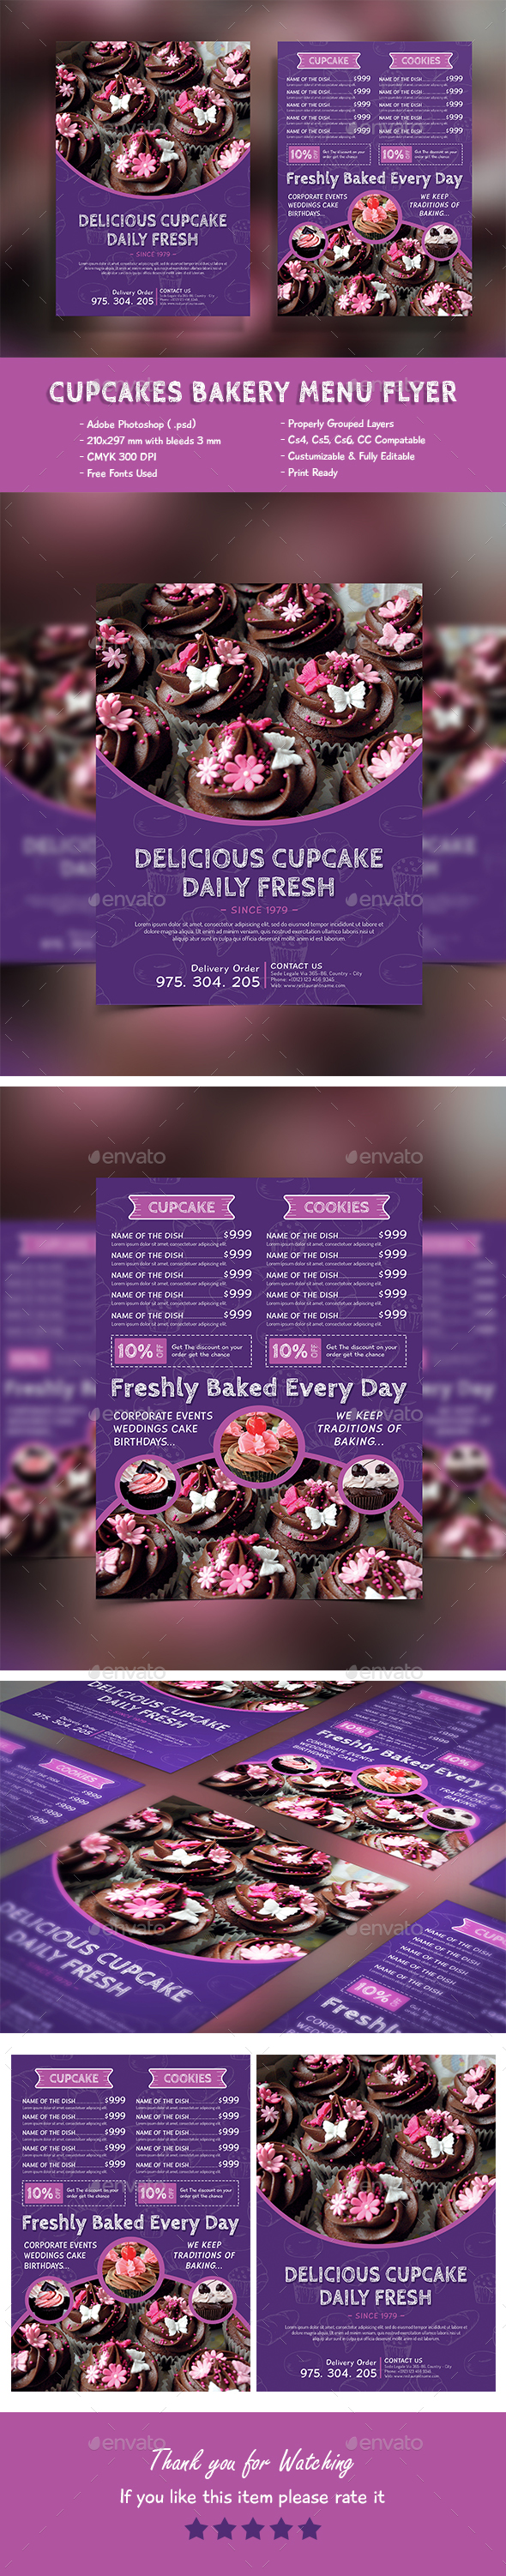 Cupcakes Bakery Menu Flyer